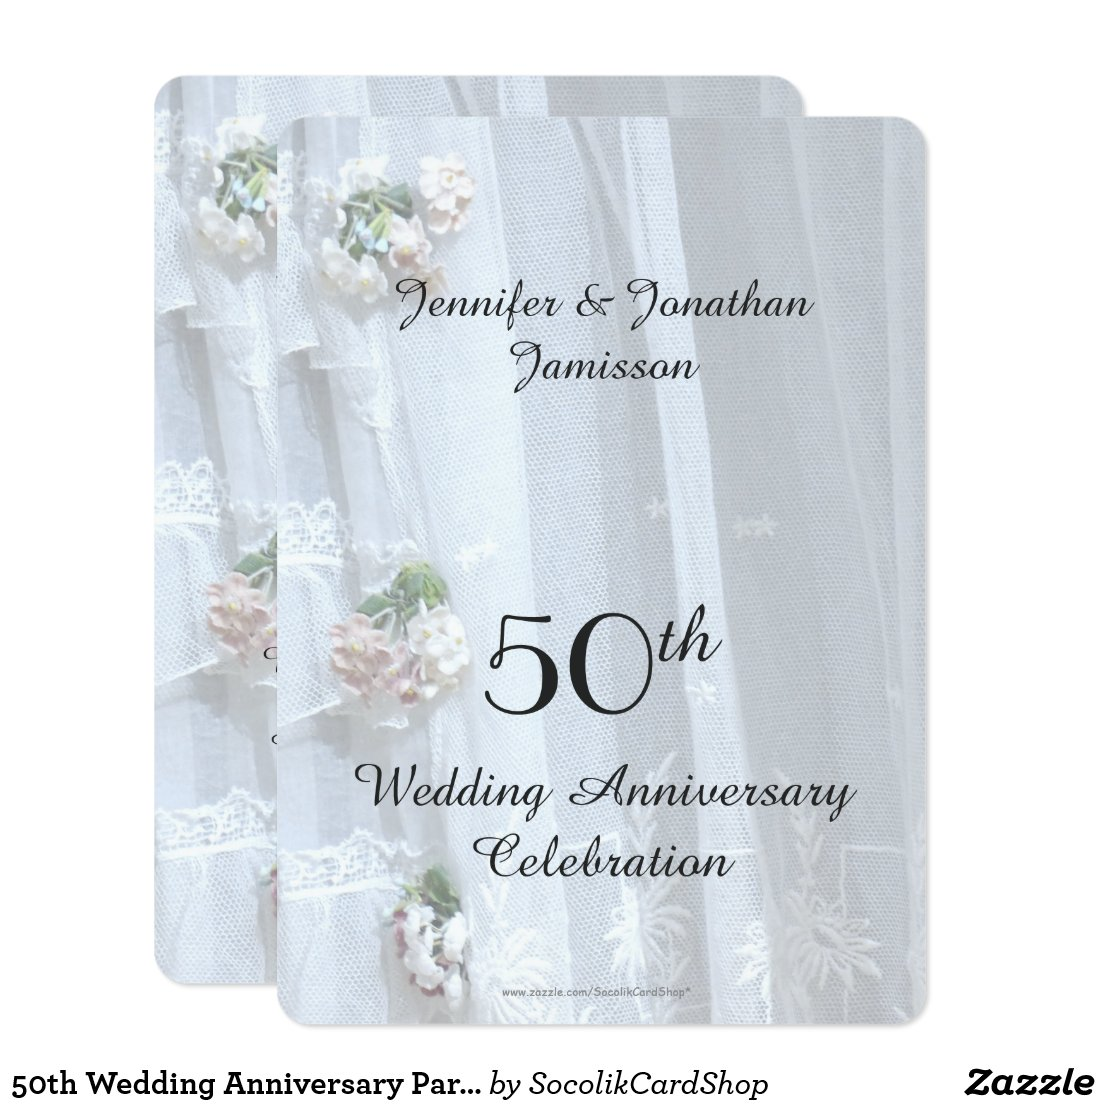 50th Wedding Anniversary Party, Vintage Lace Invitation